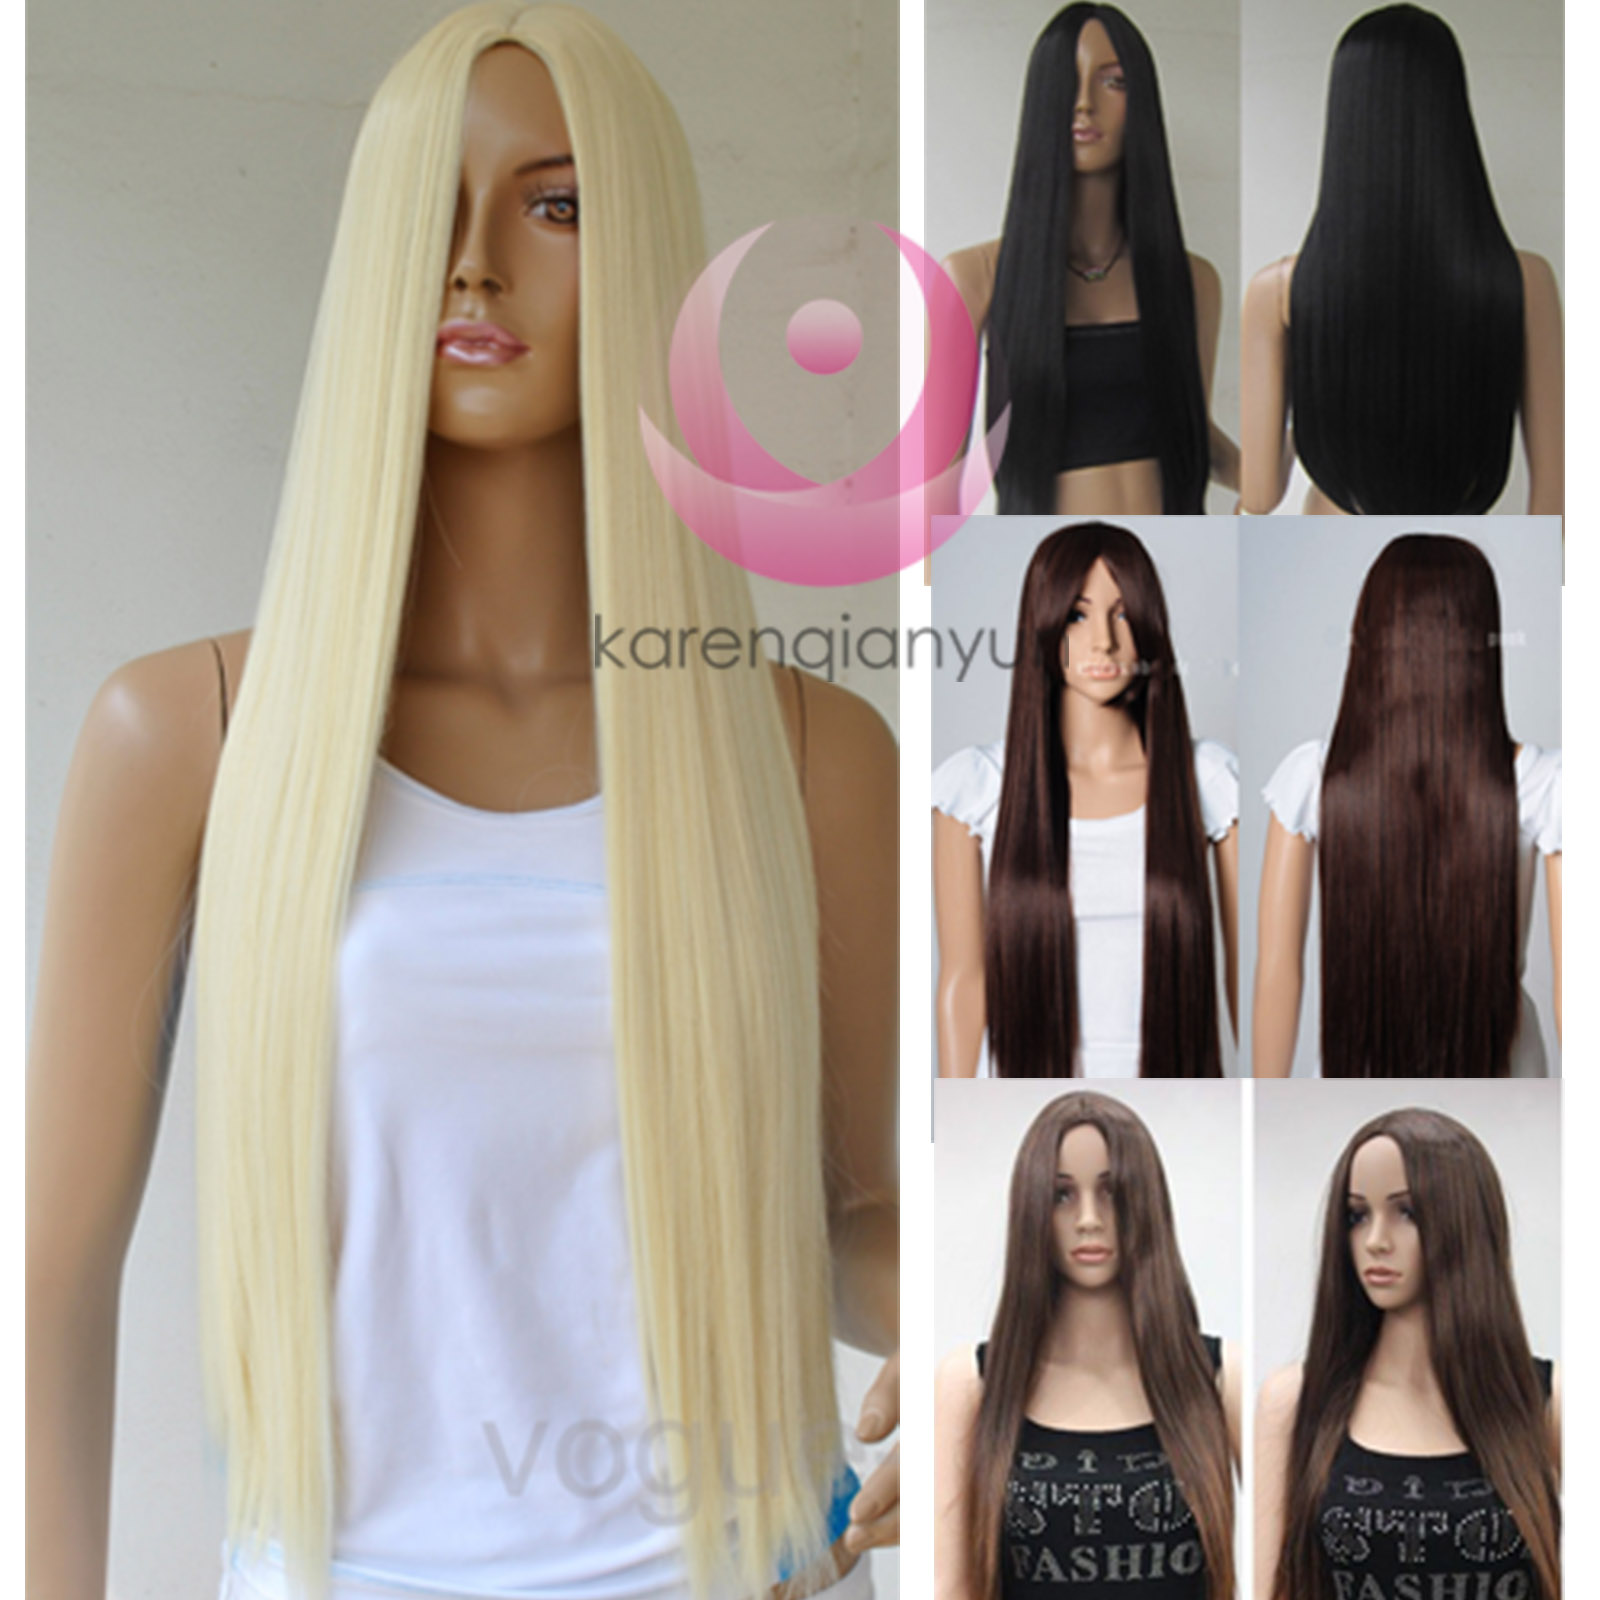 New-28-Full-Long-Cosplay-Party-Hair-Wigs-Heat-Resistant-Straight-Wig-No-Bang